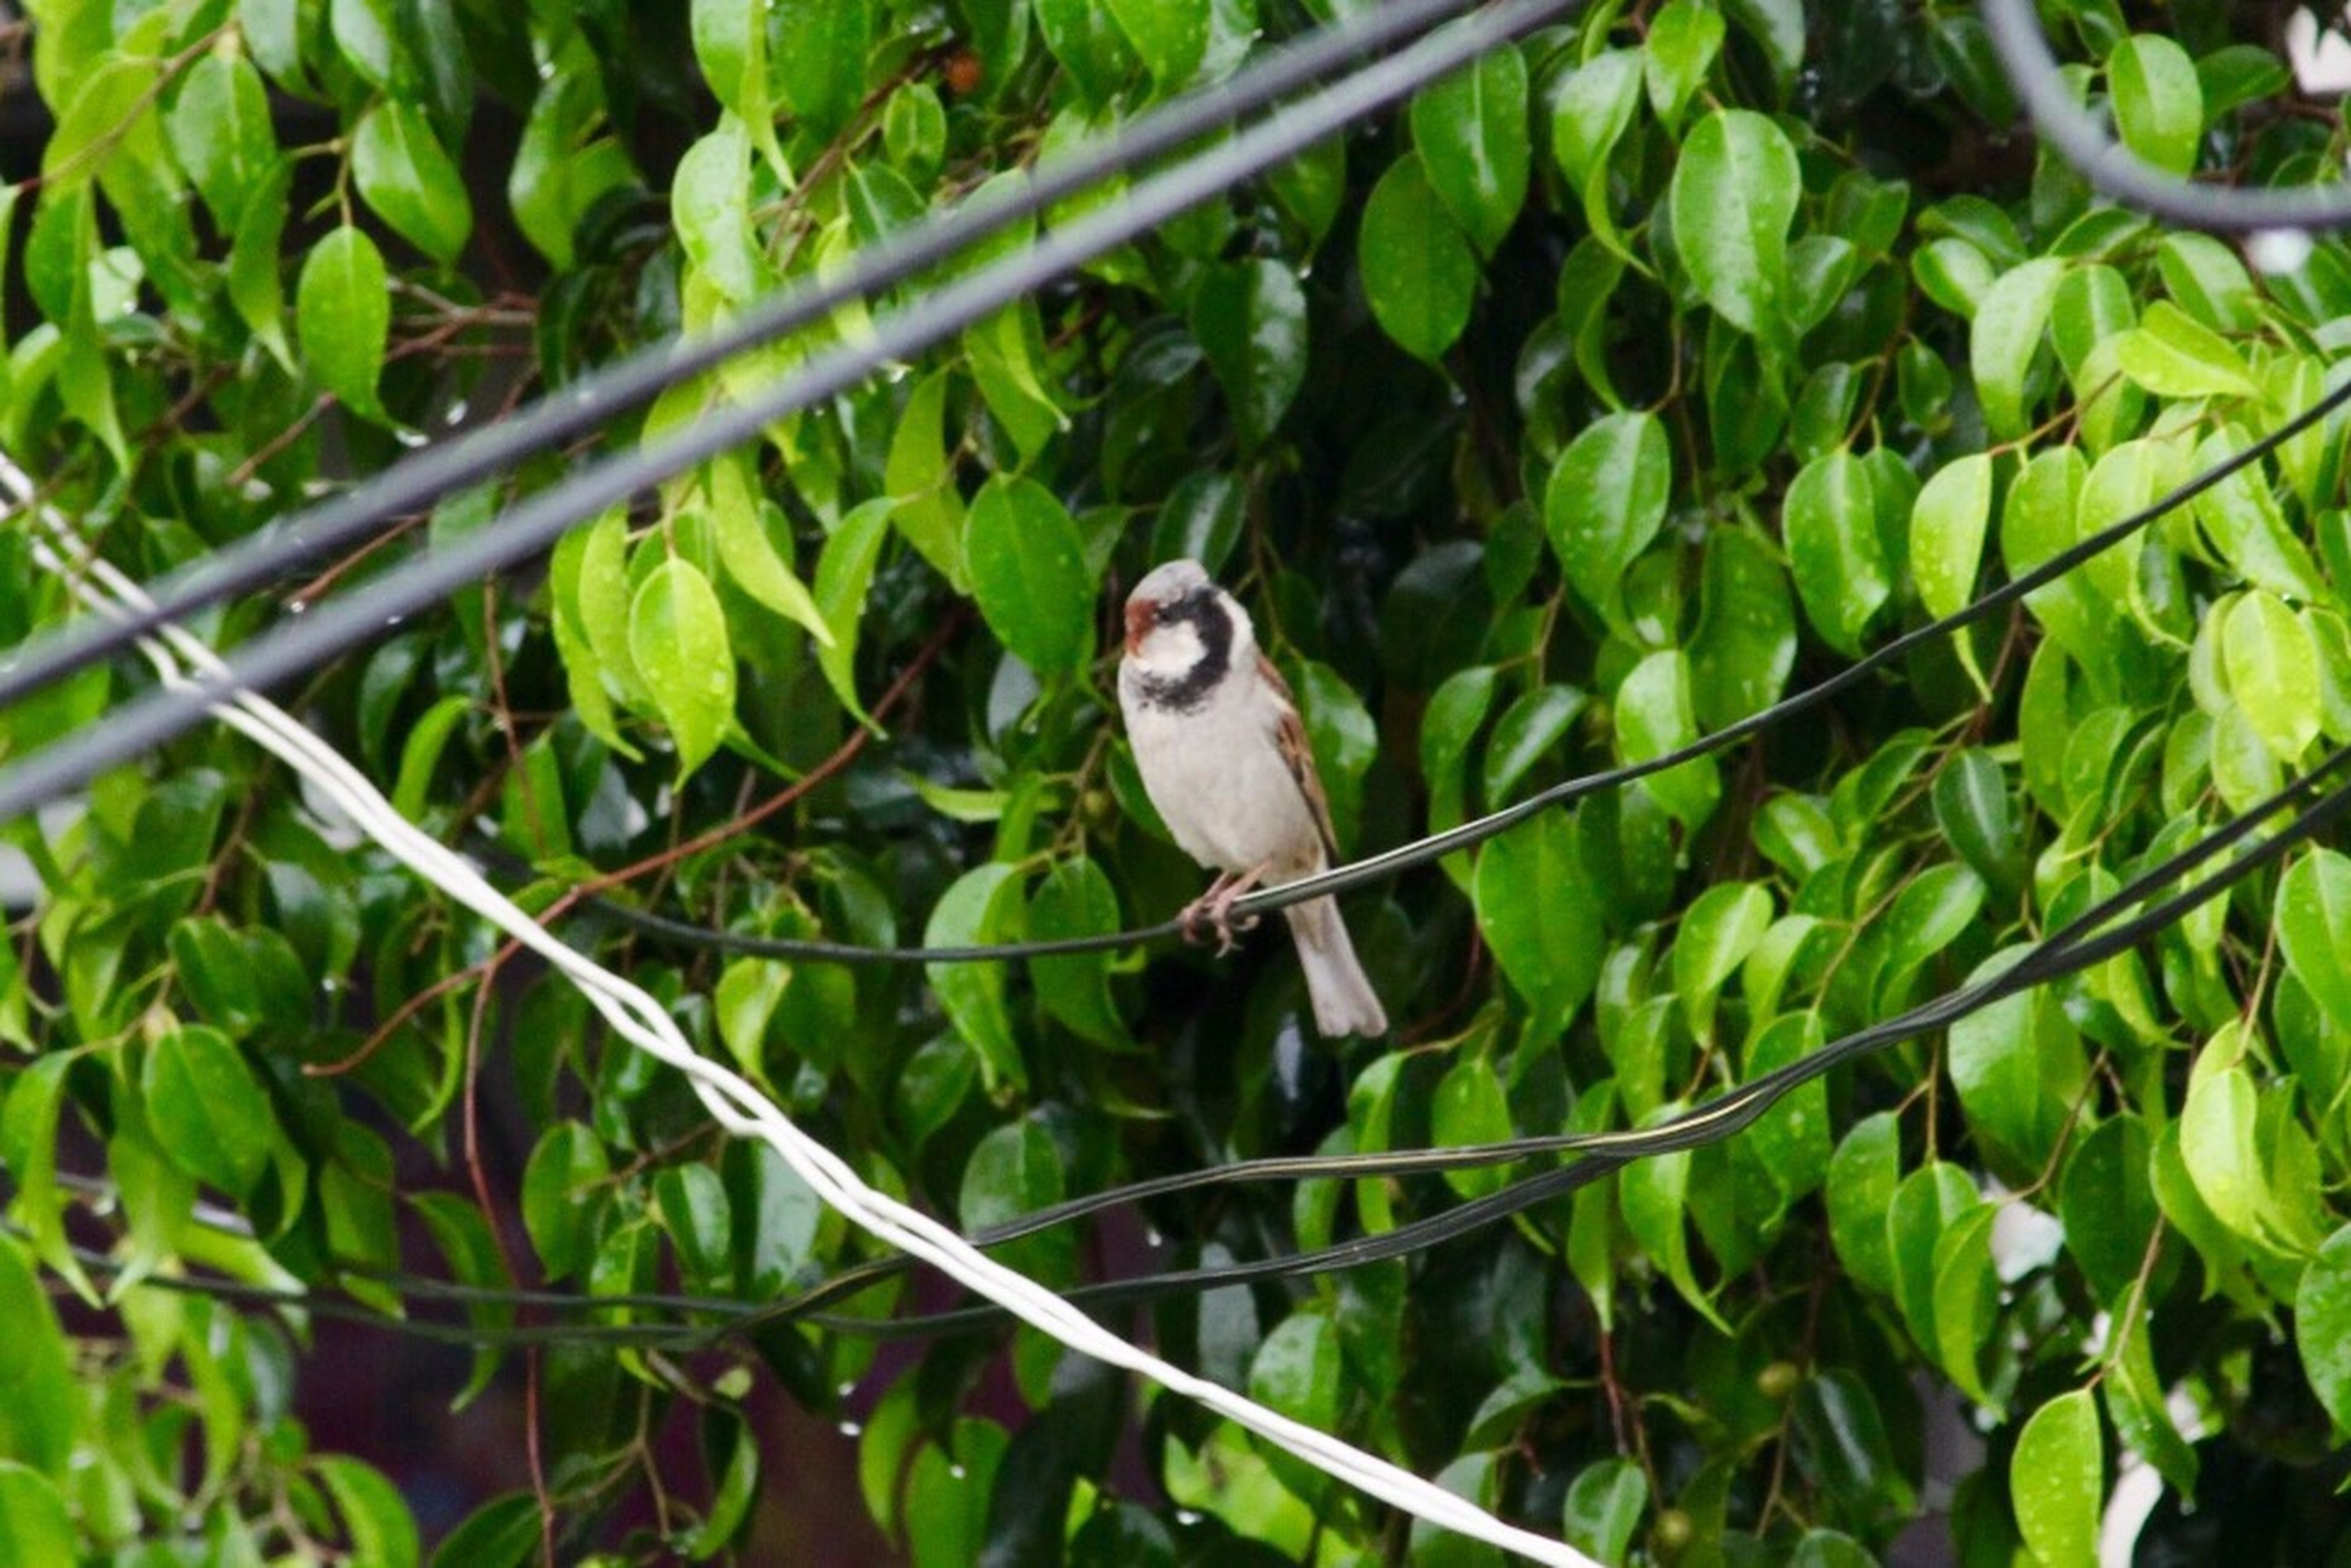 one animal, animal themes, bird, animals in the wild, leaf, perching, growth, green color, animal wildlife, outdoors, plant, nature, tree, branch, day, focus on foreground, no people, full length, beauty in nature, close-up, mammal